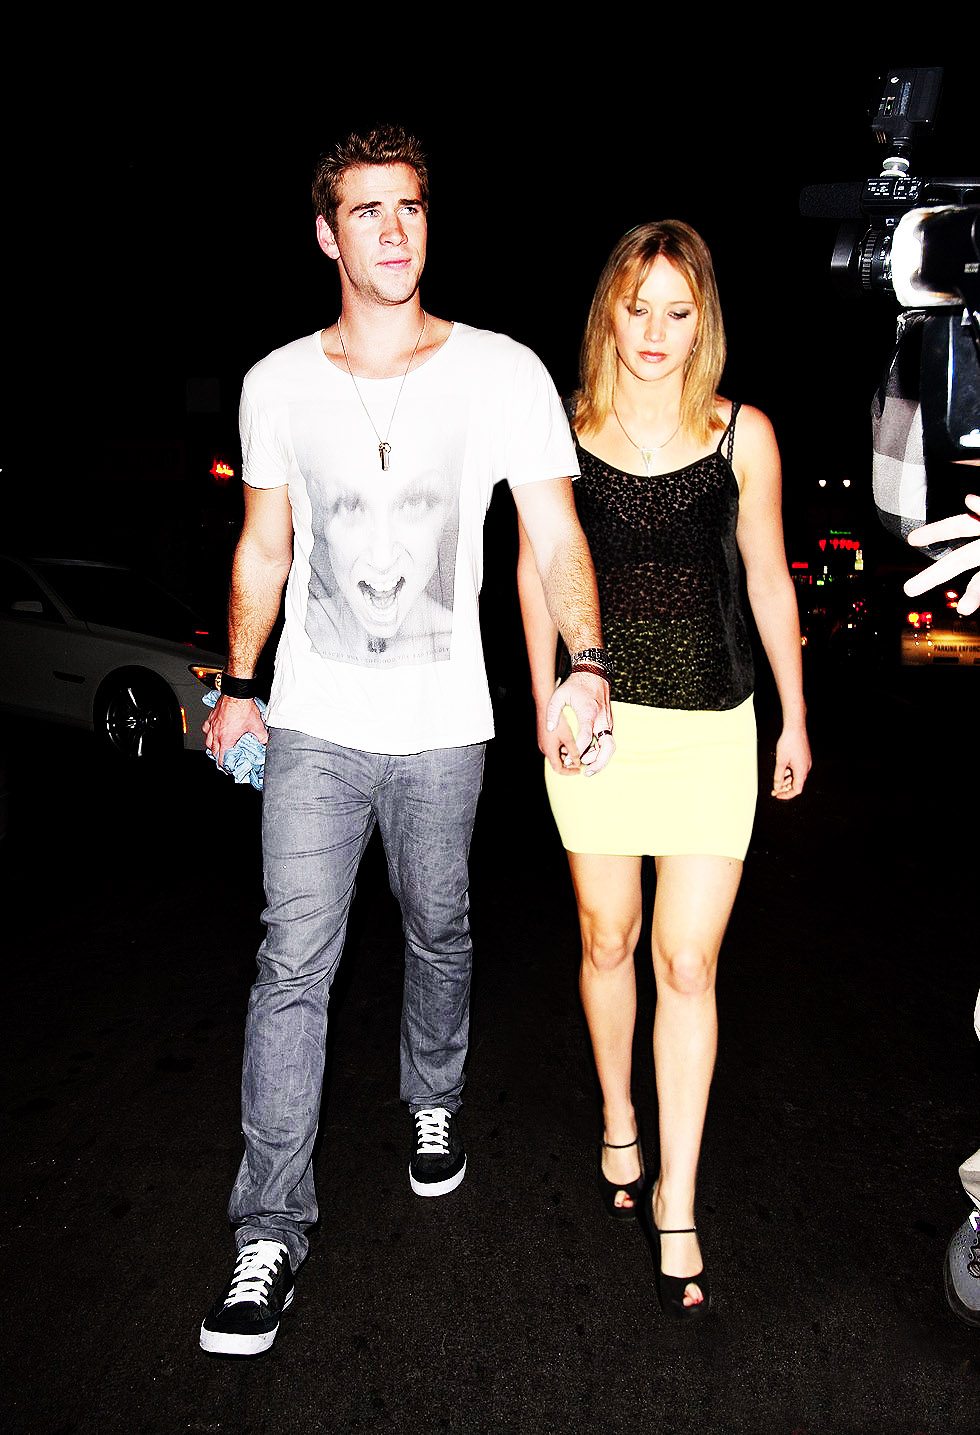 Liam Hemsworth & Jennifer Lawrence would make a really cute couple (8 ...